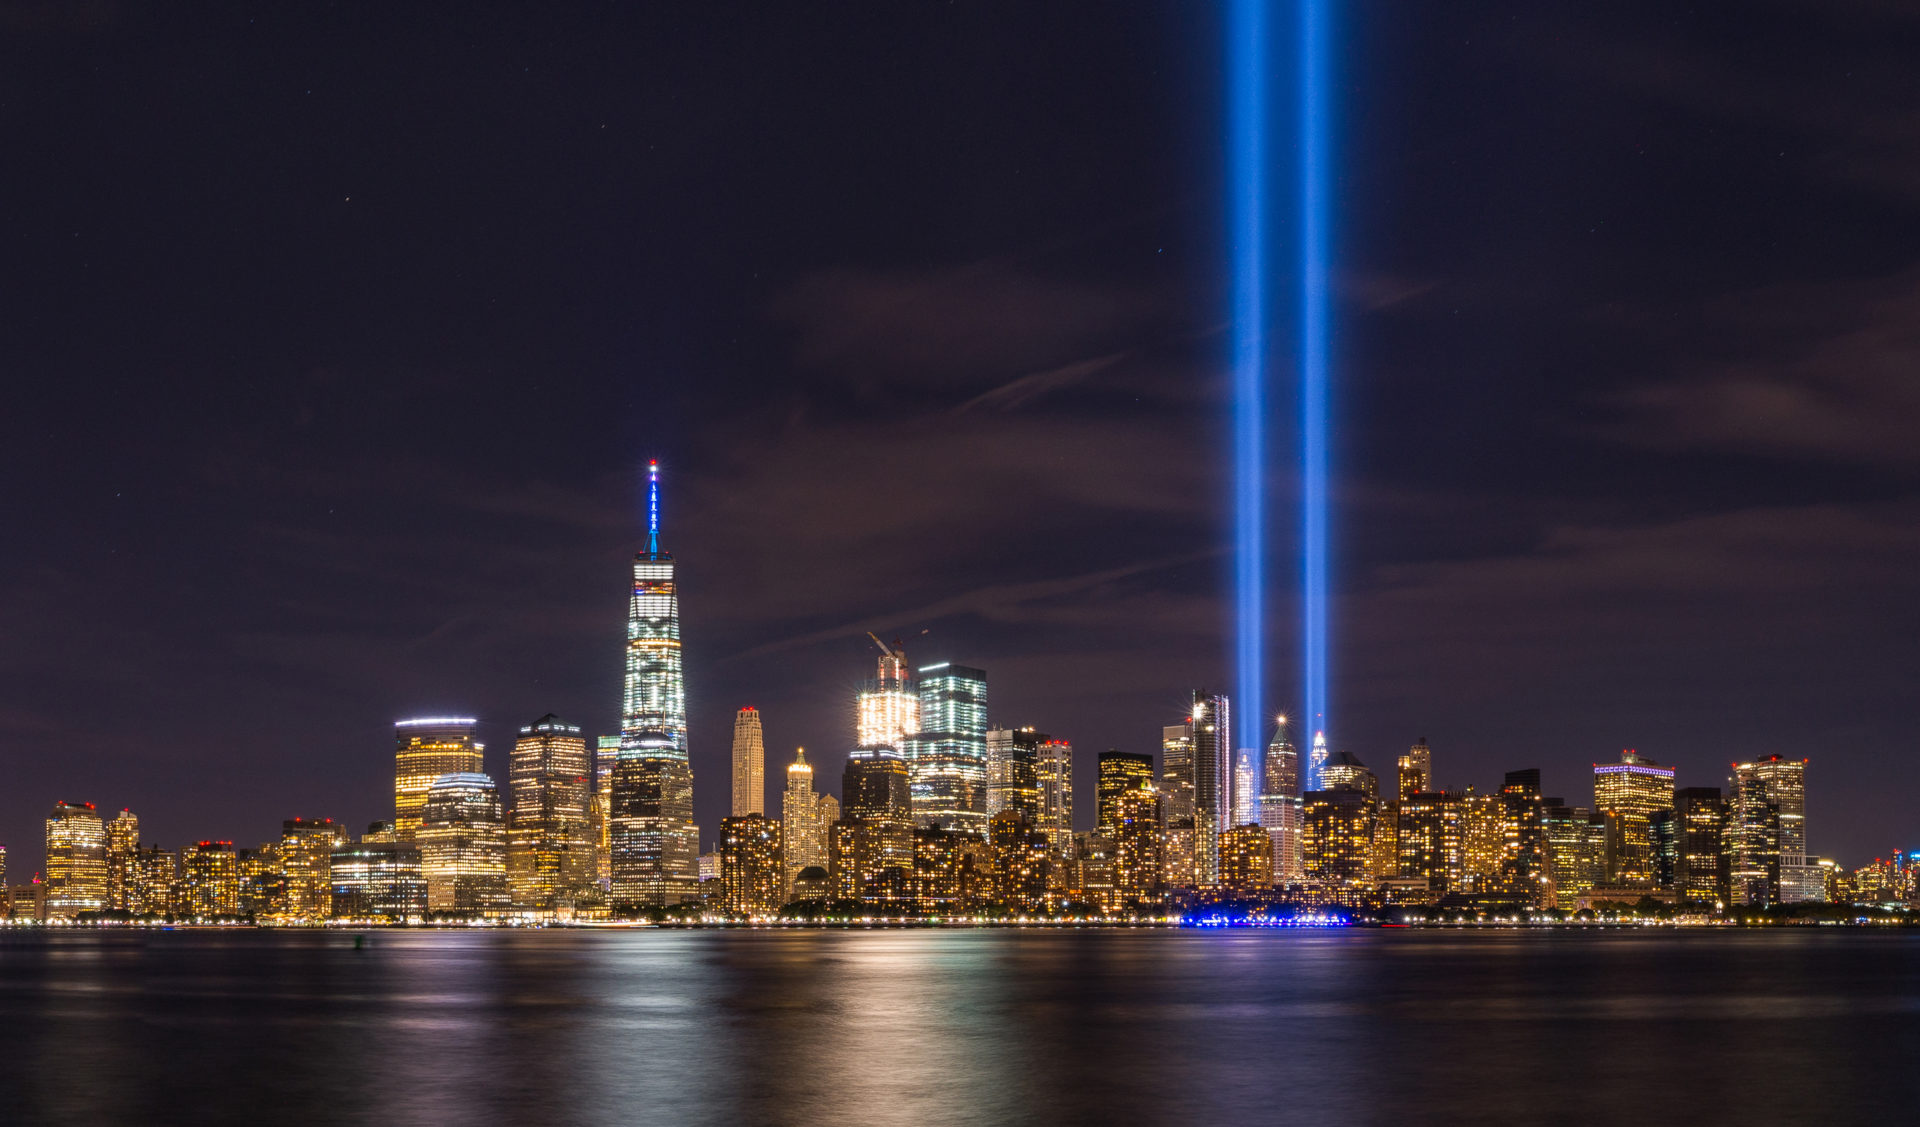 For many, the events of September 11, 2001 are an ongoing health crisis.